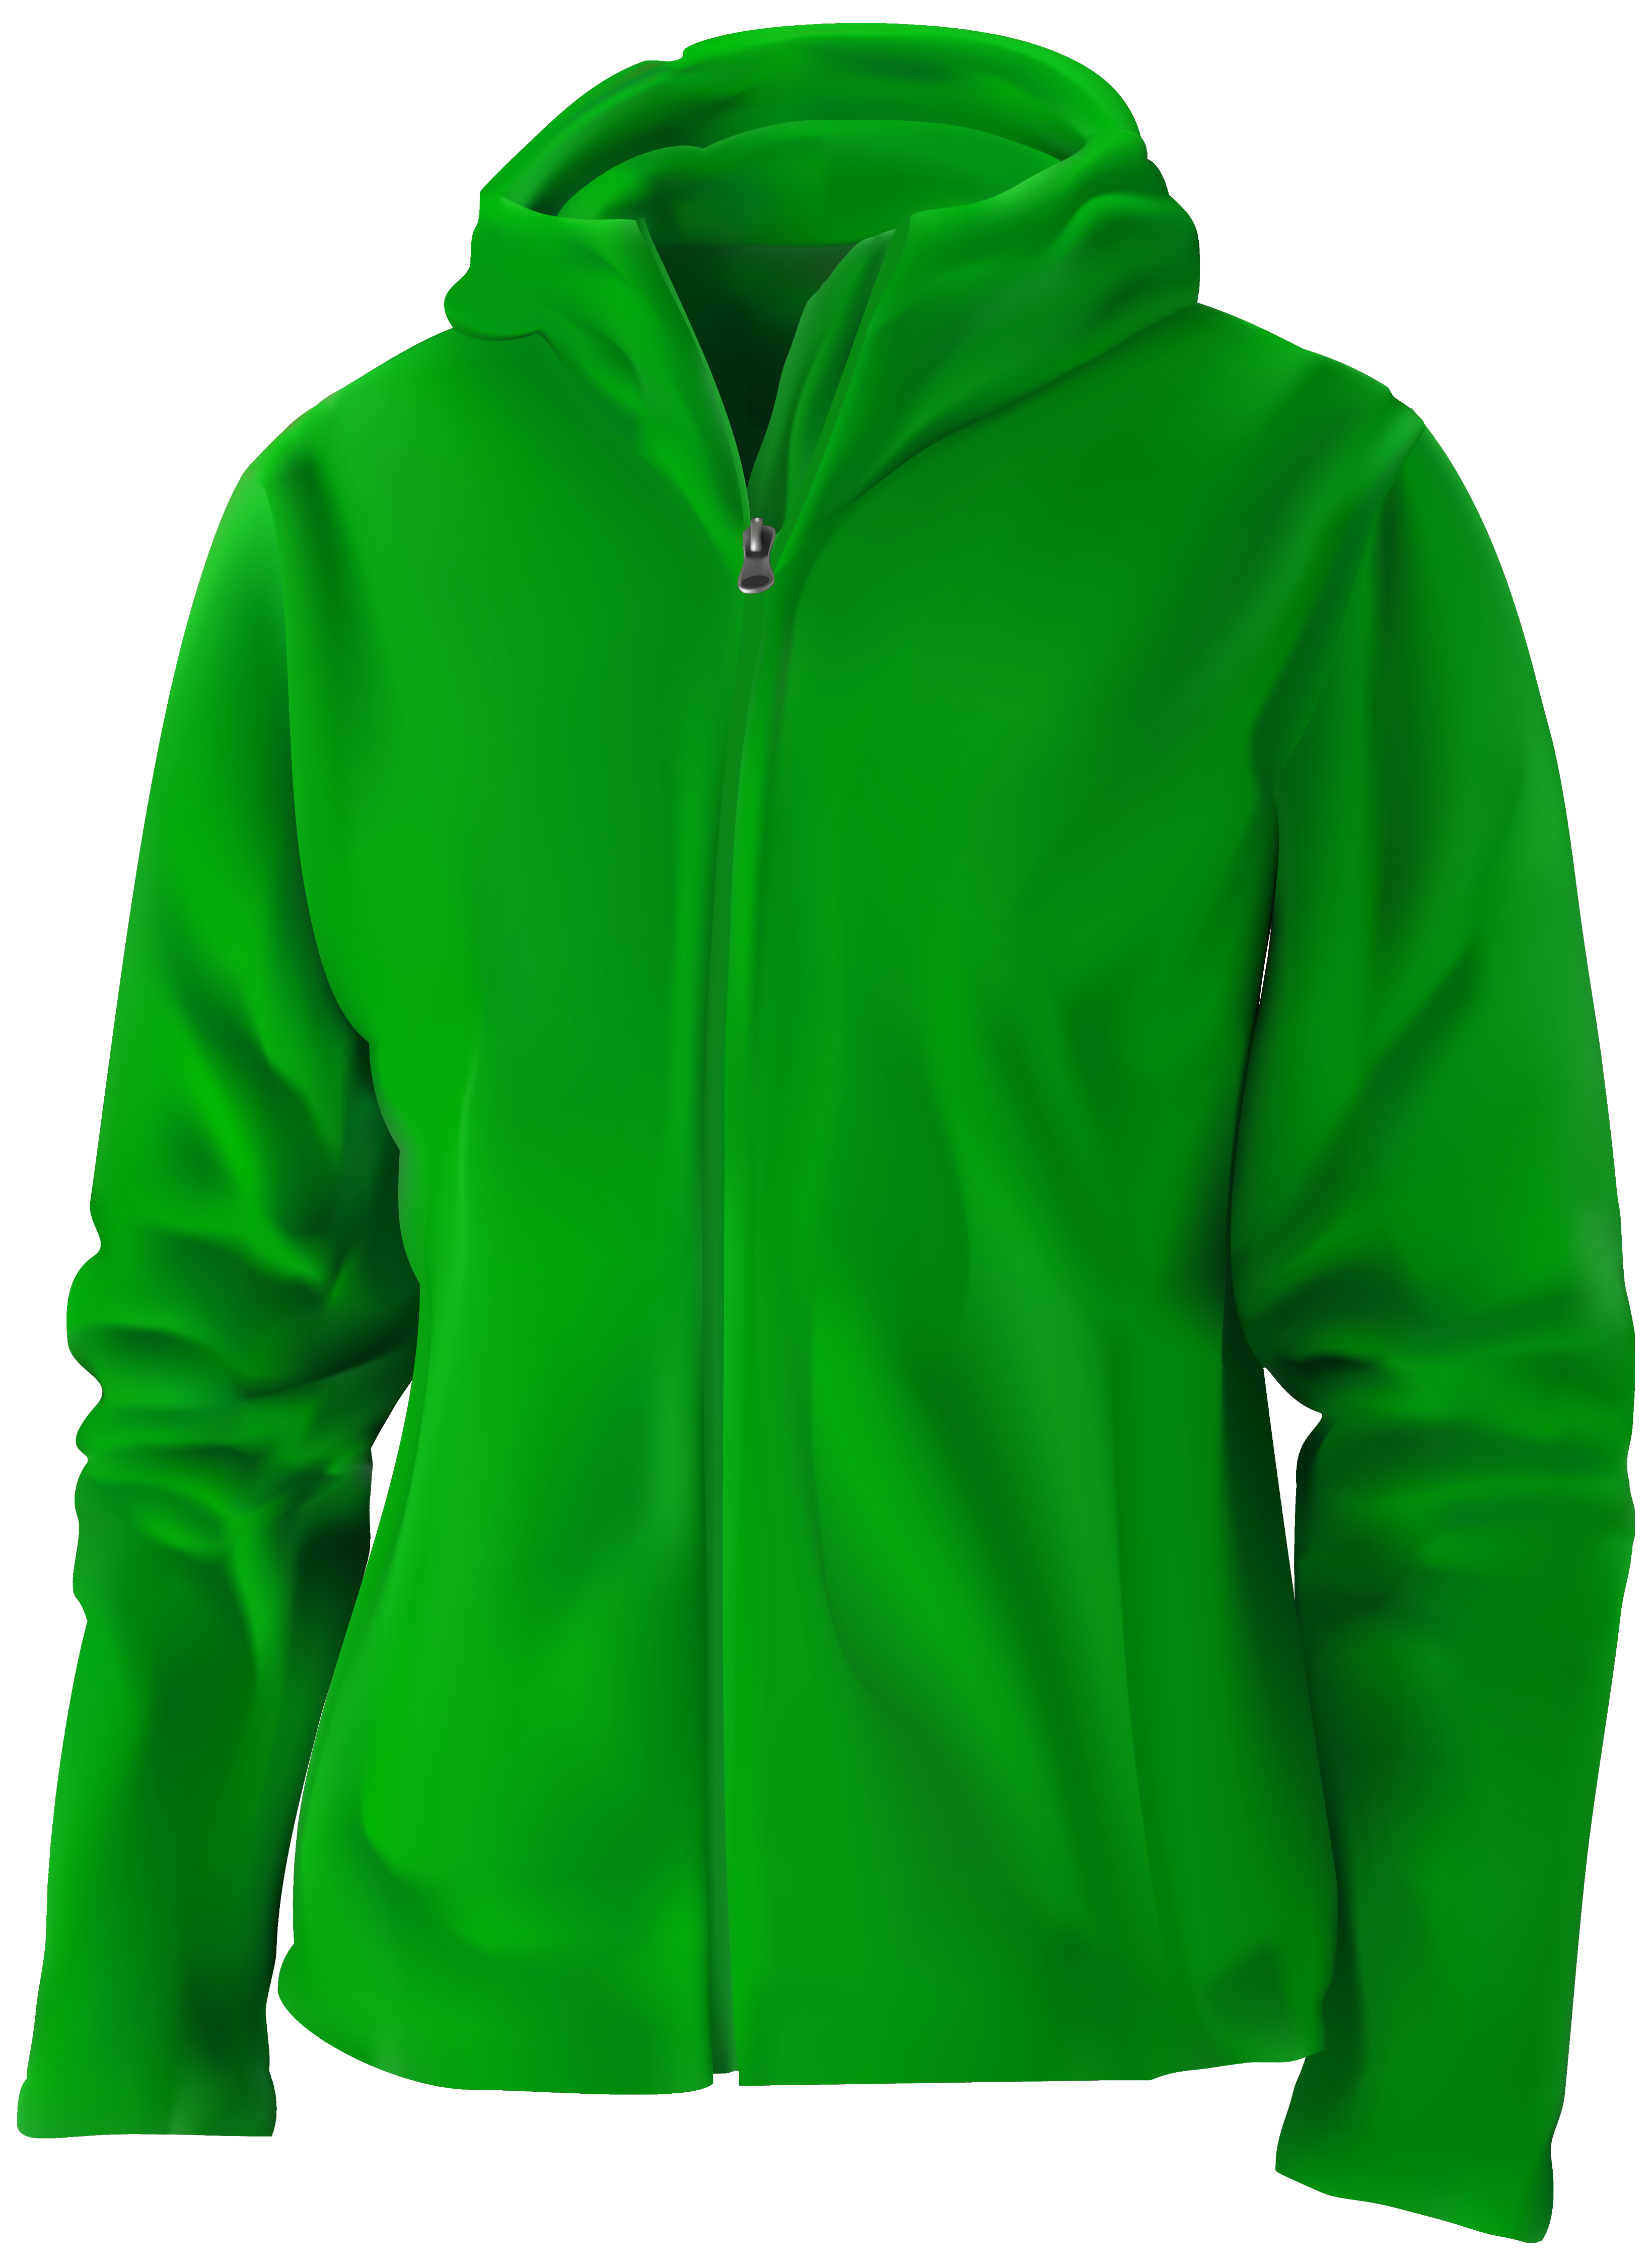 image free Hoodie clipart. Green png best web.